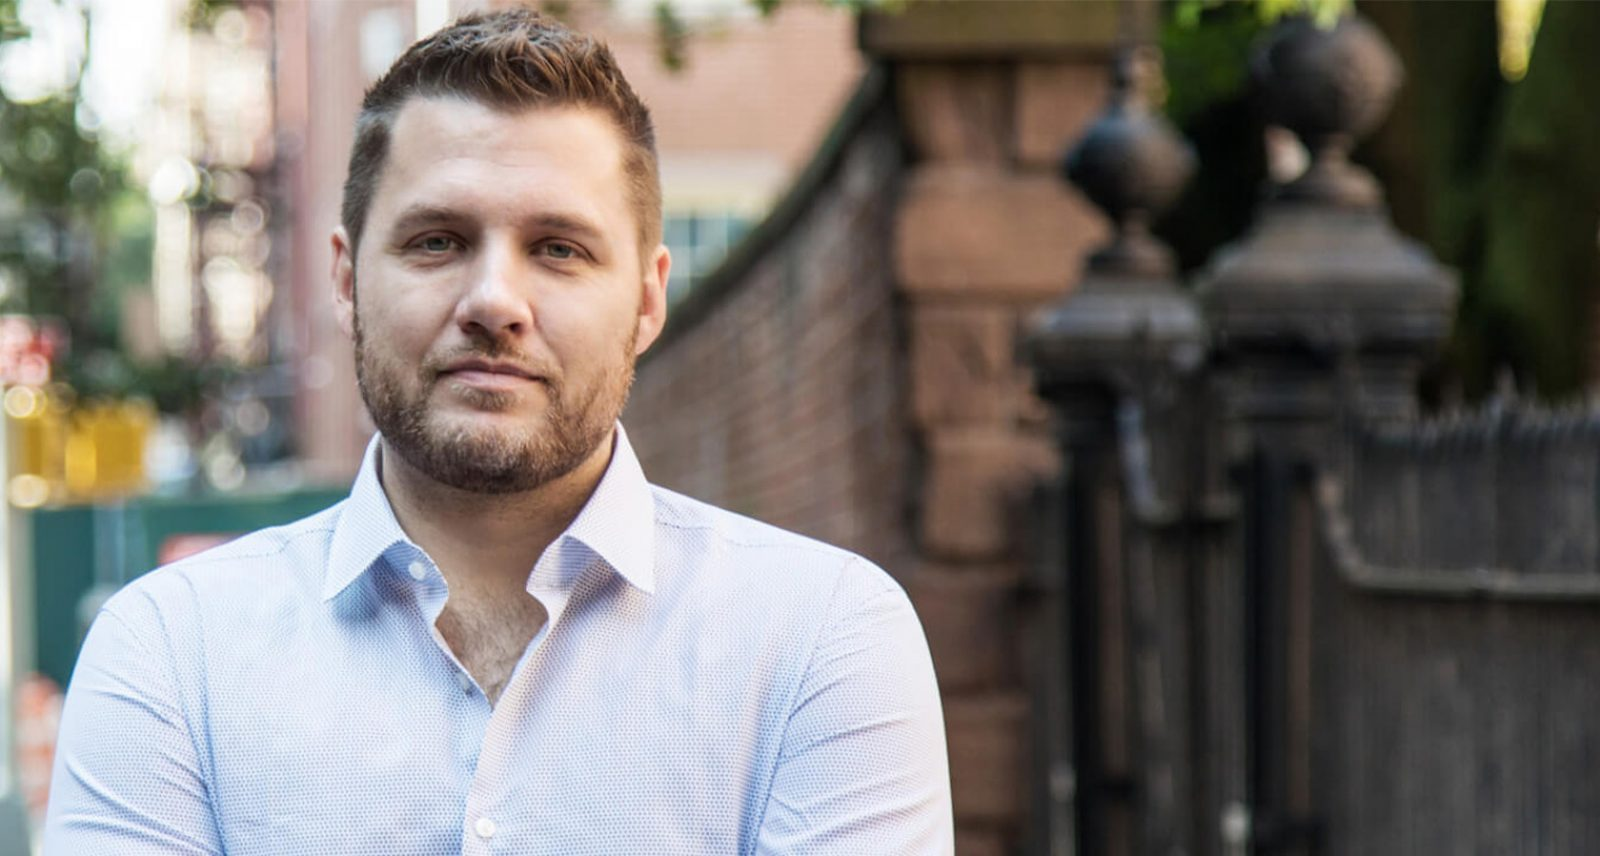 Author Mark Manson on Modern Relationships, Staying Calm in Uncertain Times and His New Audiobook 'Love Is Not Enough'